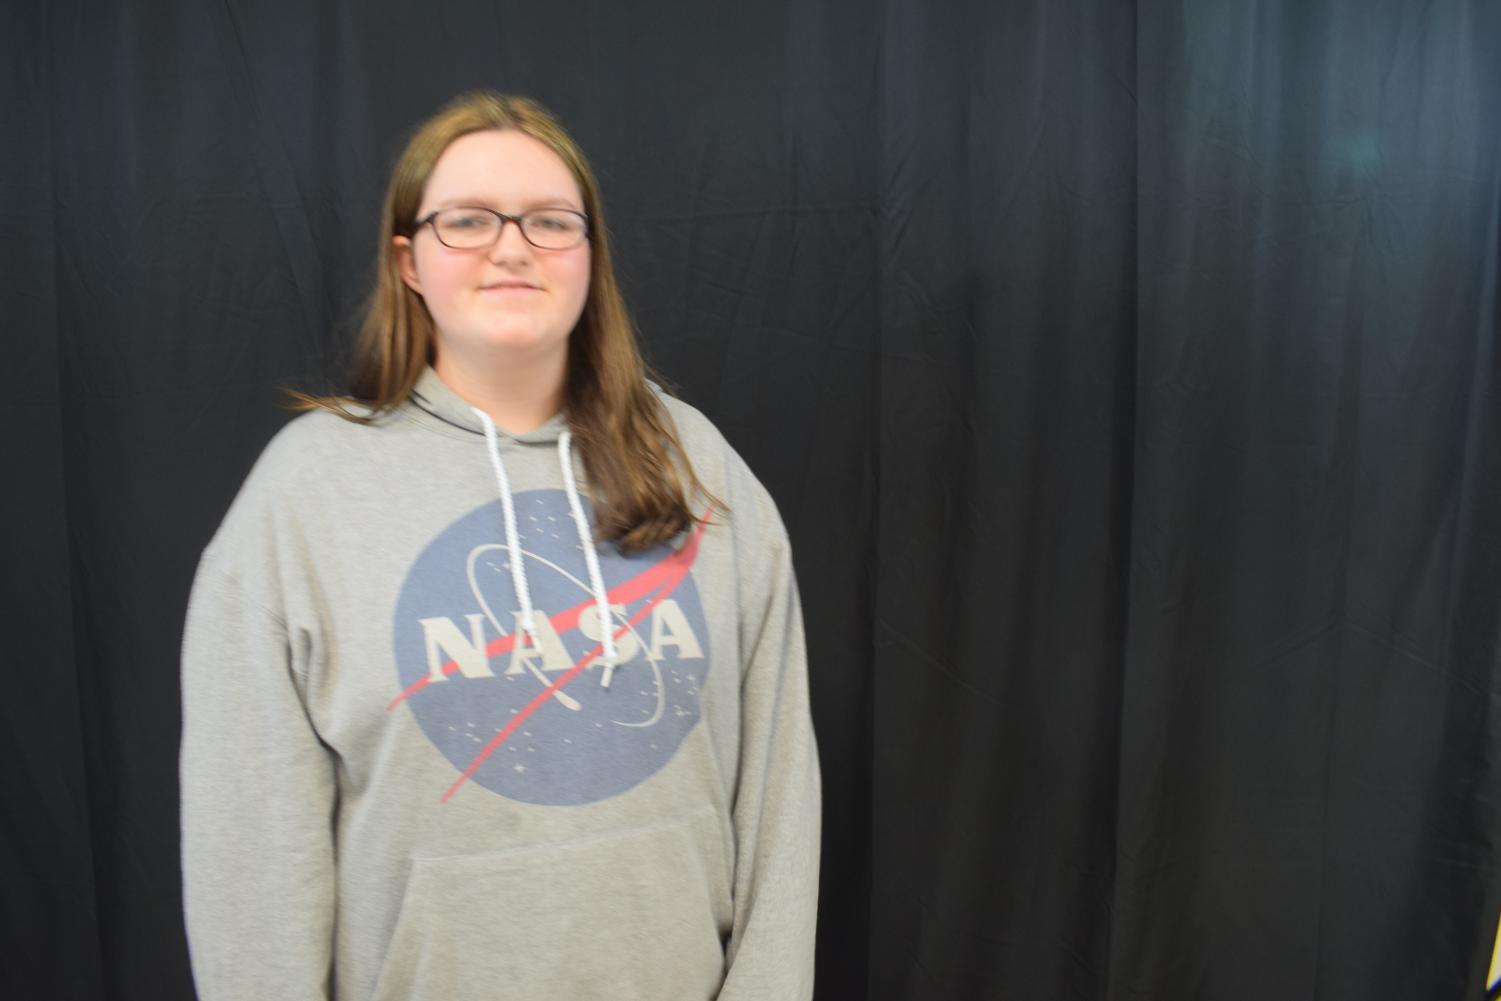 Mia Matis is a freshman and looks forward to covering topics for The Voyager